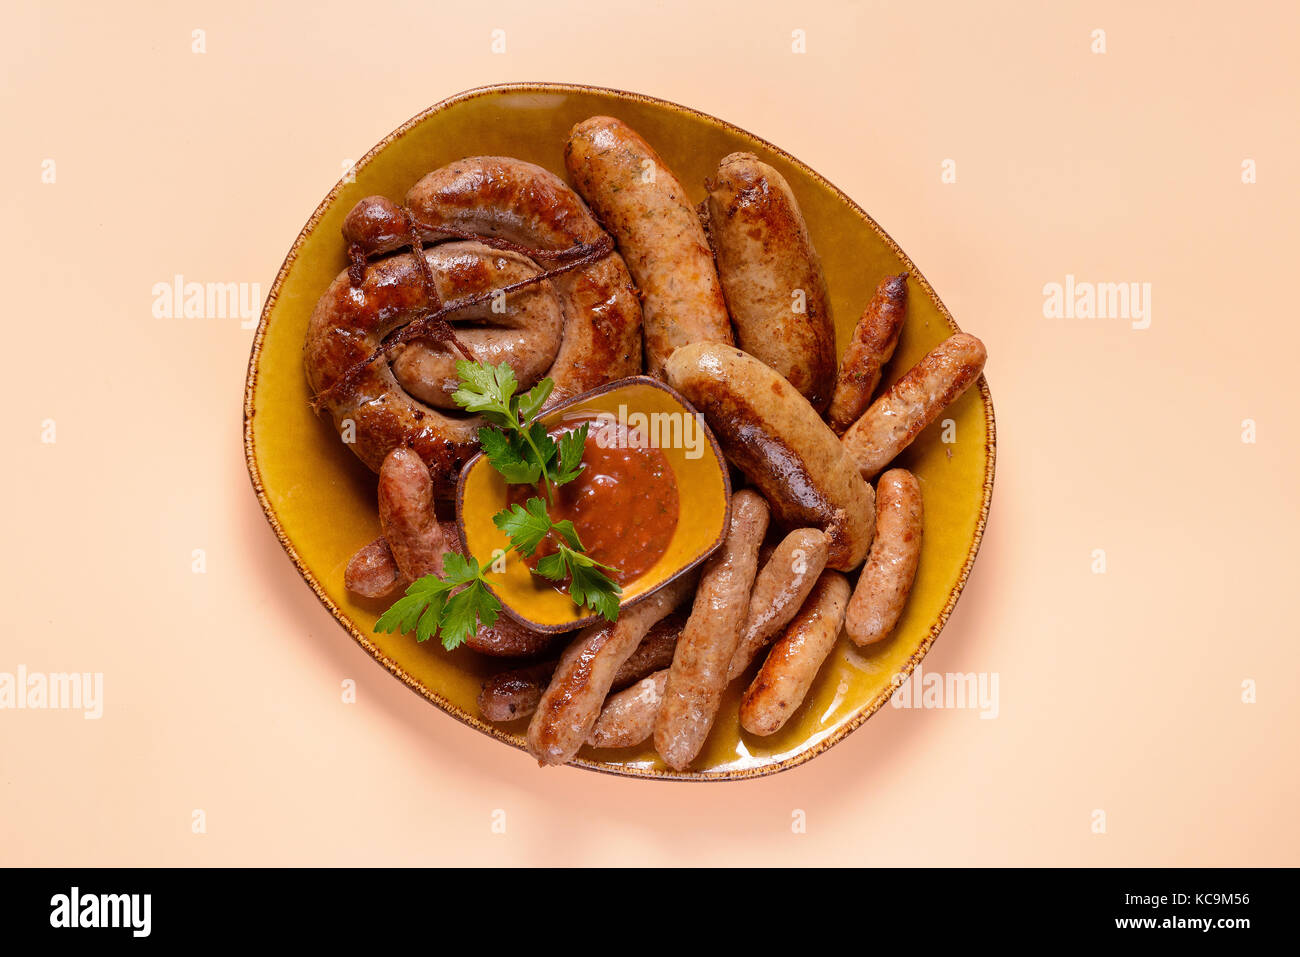 Set of fried sausages - Stock Image